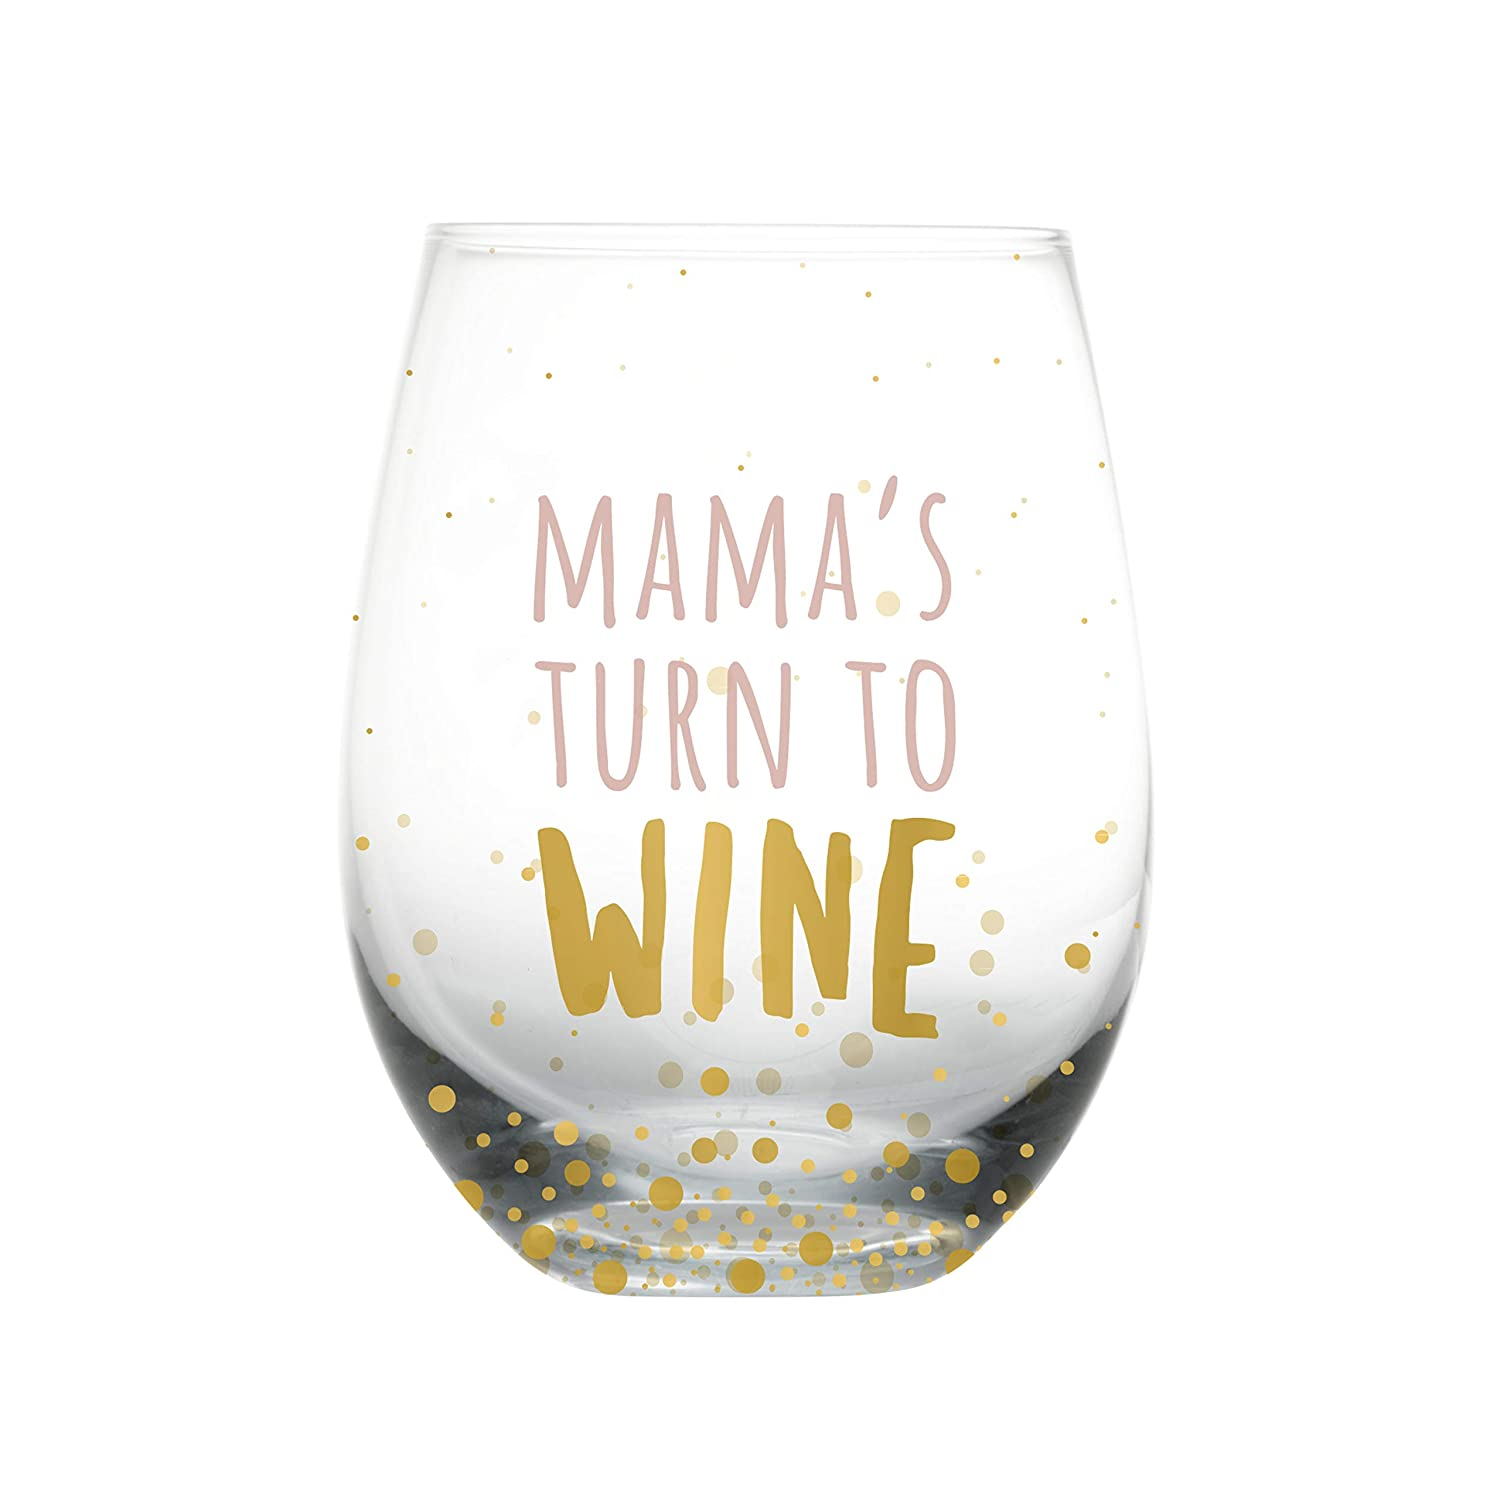 Pearhead Motherhood 'Mama's Turn to Wine' Wine Glass, Humorous Gifts for New Moms, First Mothers Day Gift